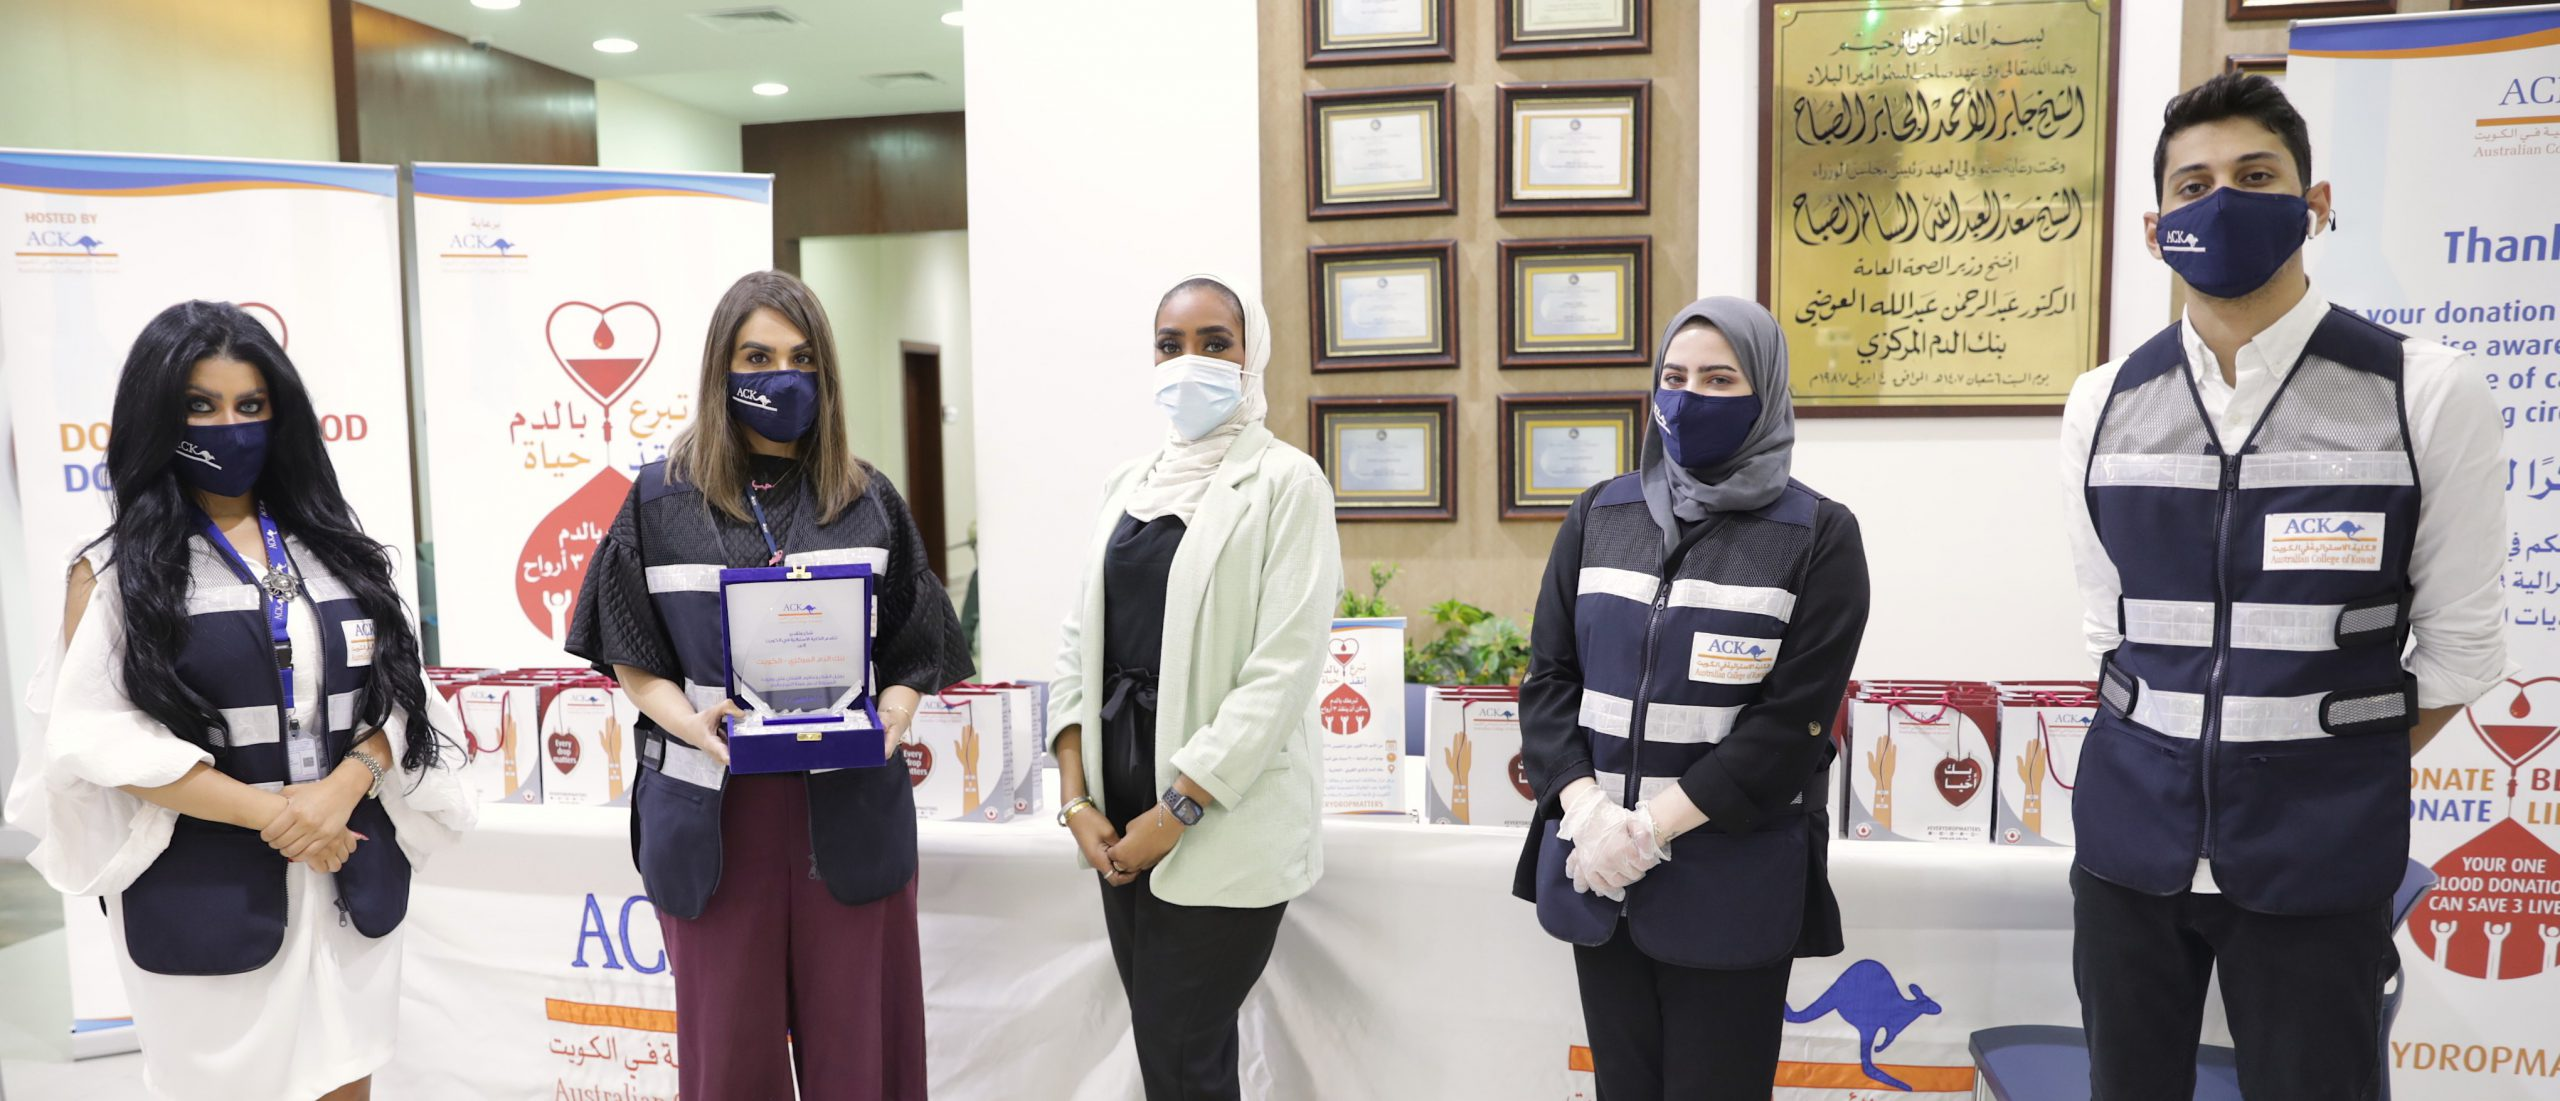 ACK is the Only Educational Institution in Kuwait Hosting Blood Drive During COVID-19 Pandemic